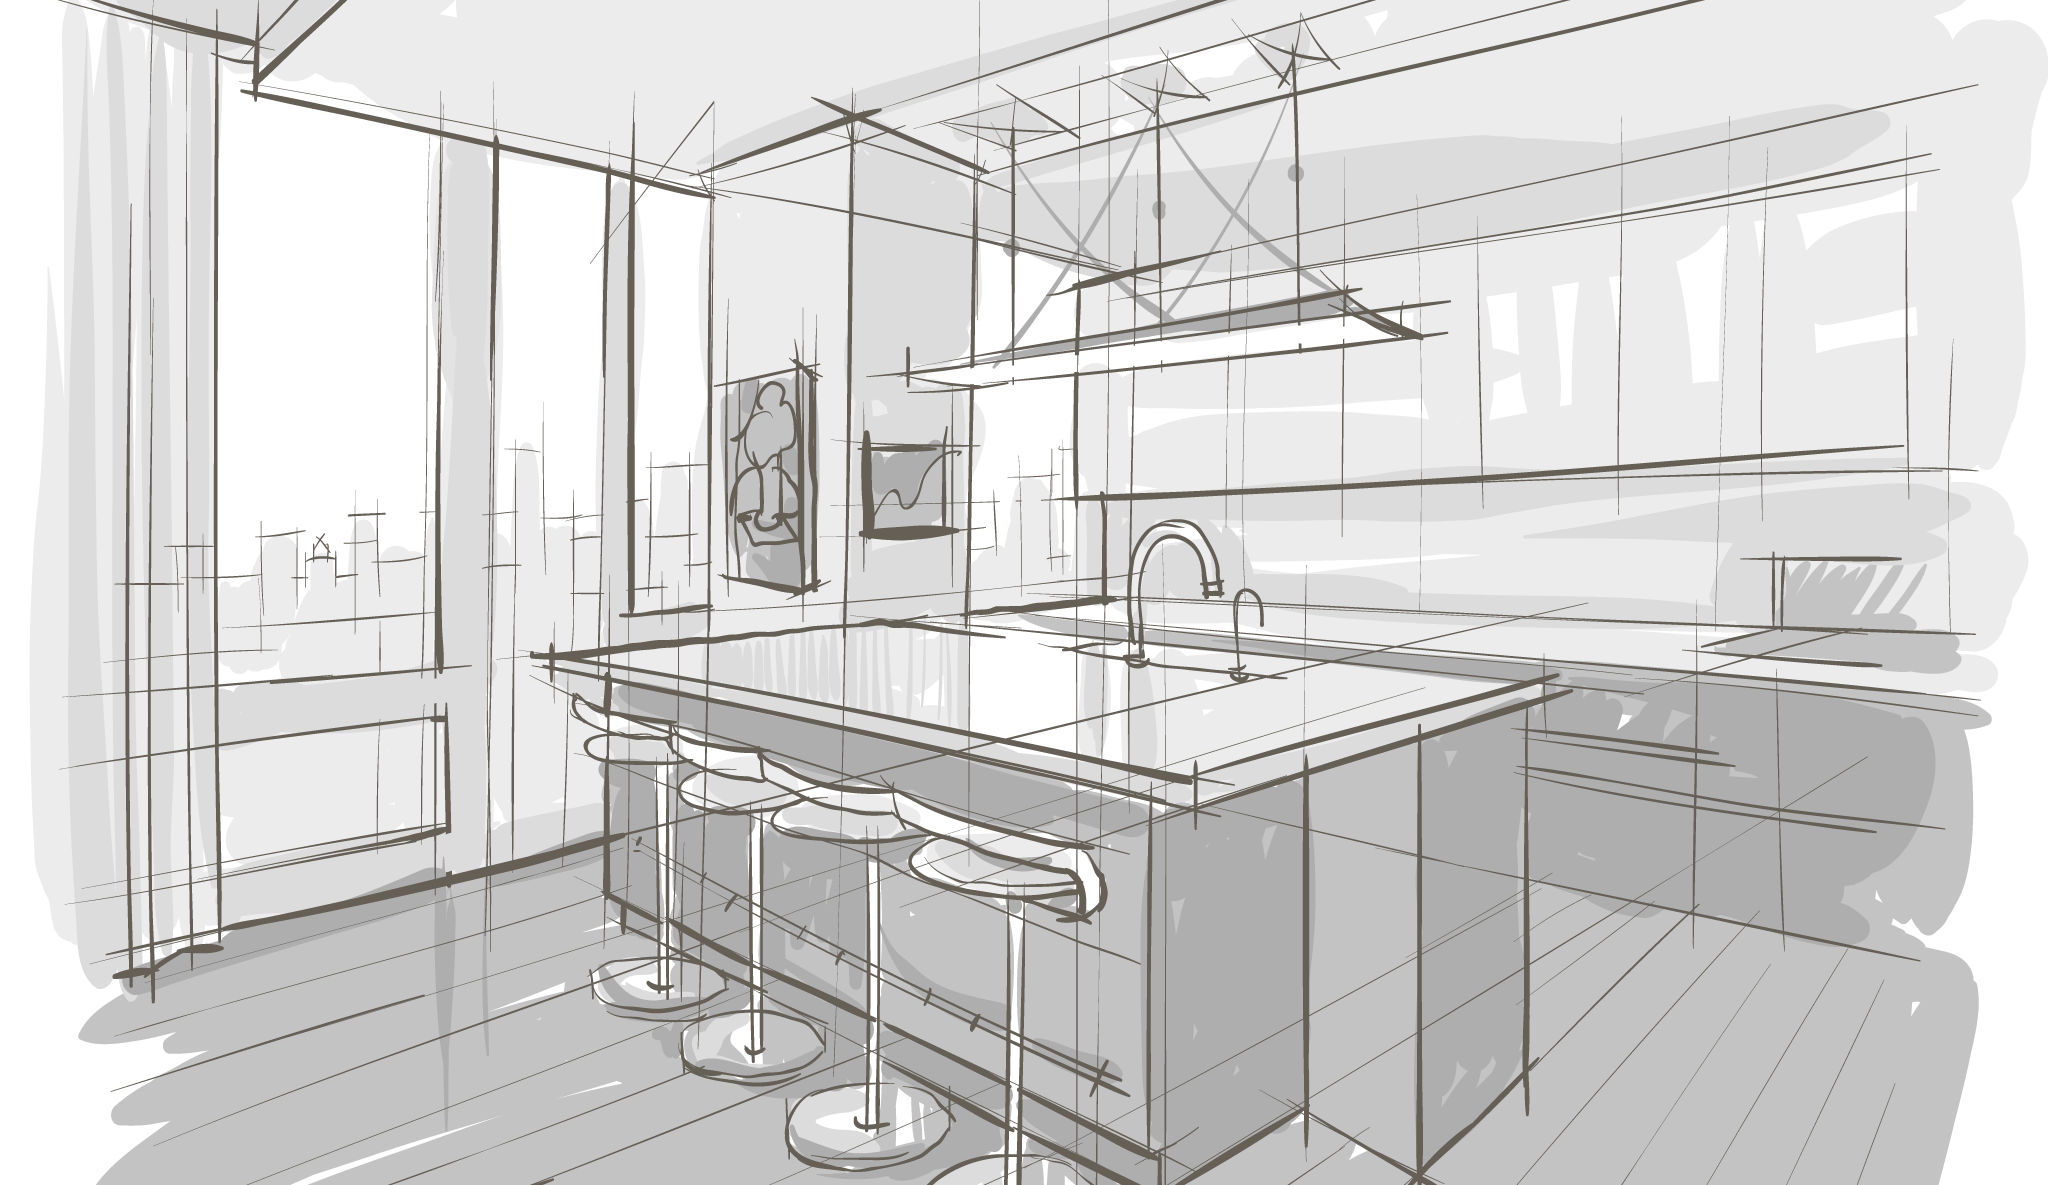 Drawing Bathroom Interior Design Transparent & PNG Clipart ...